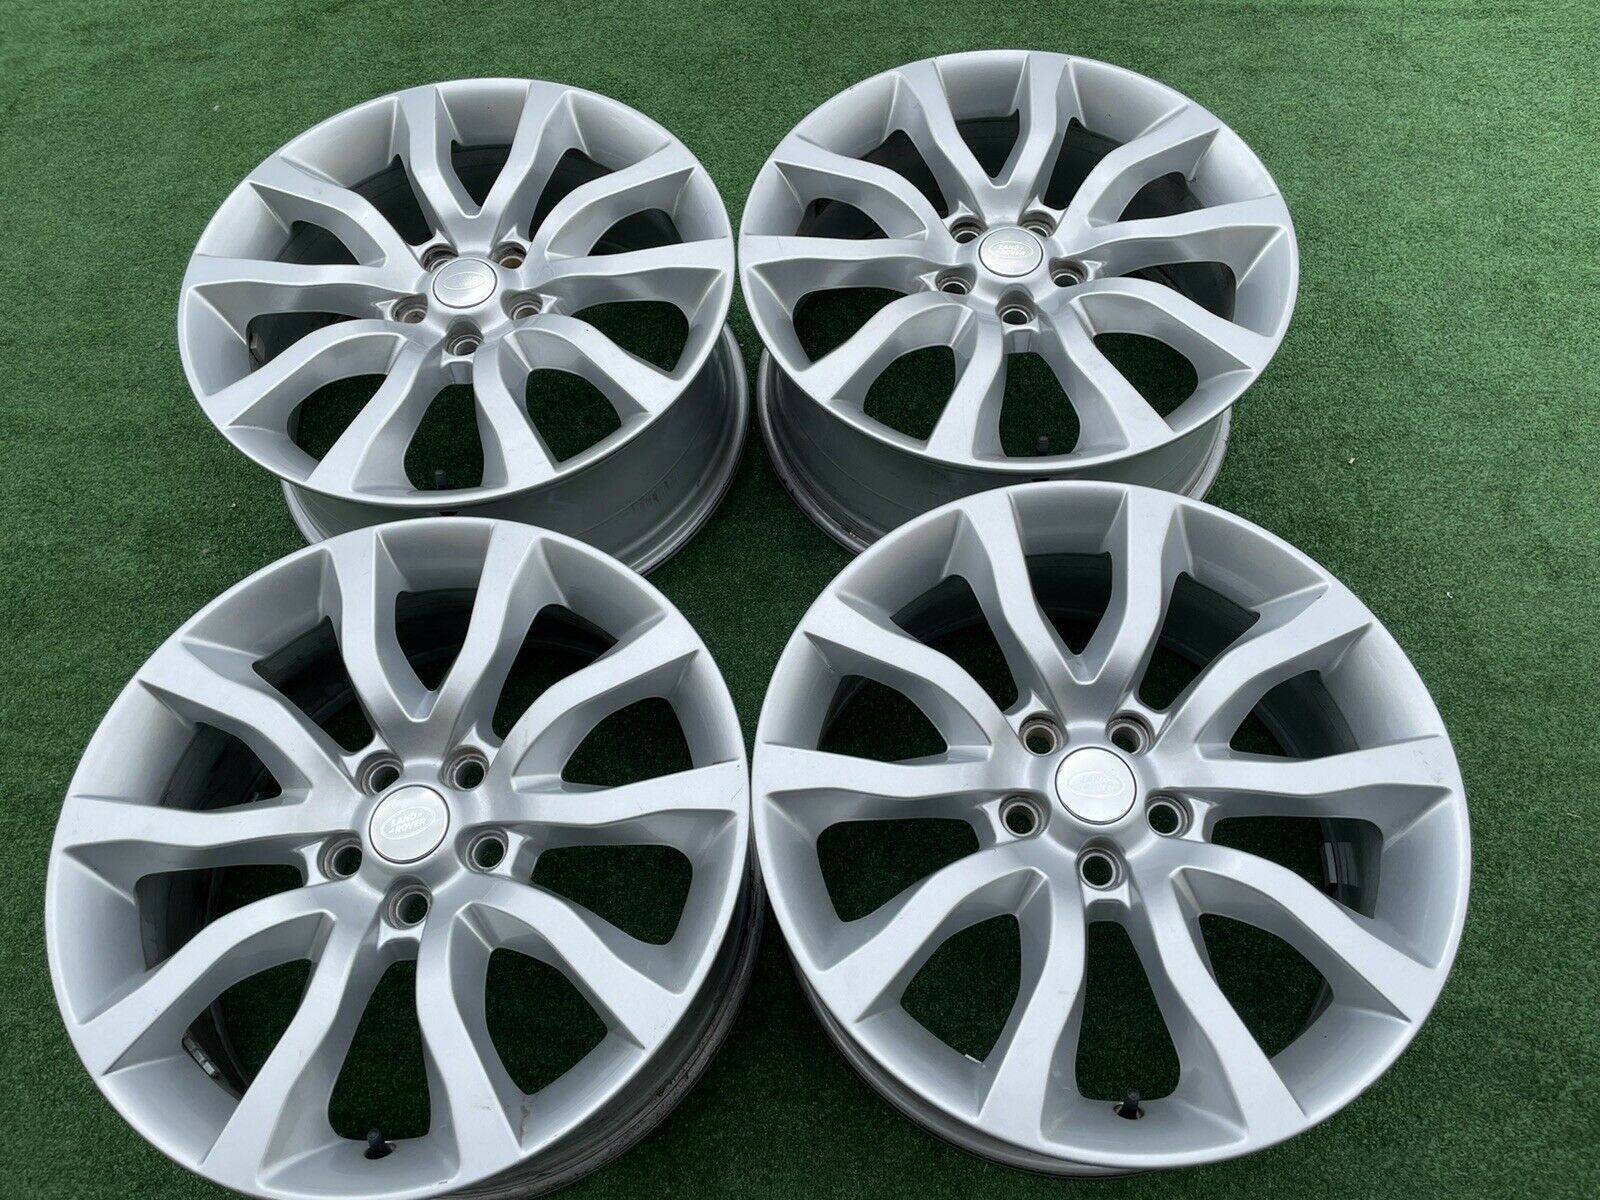 20 Inch Range Rover Wheels In 2021 Oem Wheels Wheel Rims Range Rover Wheels